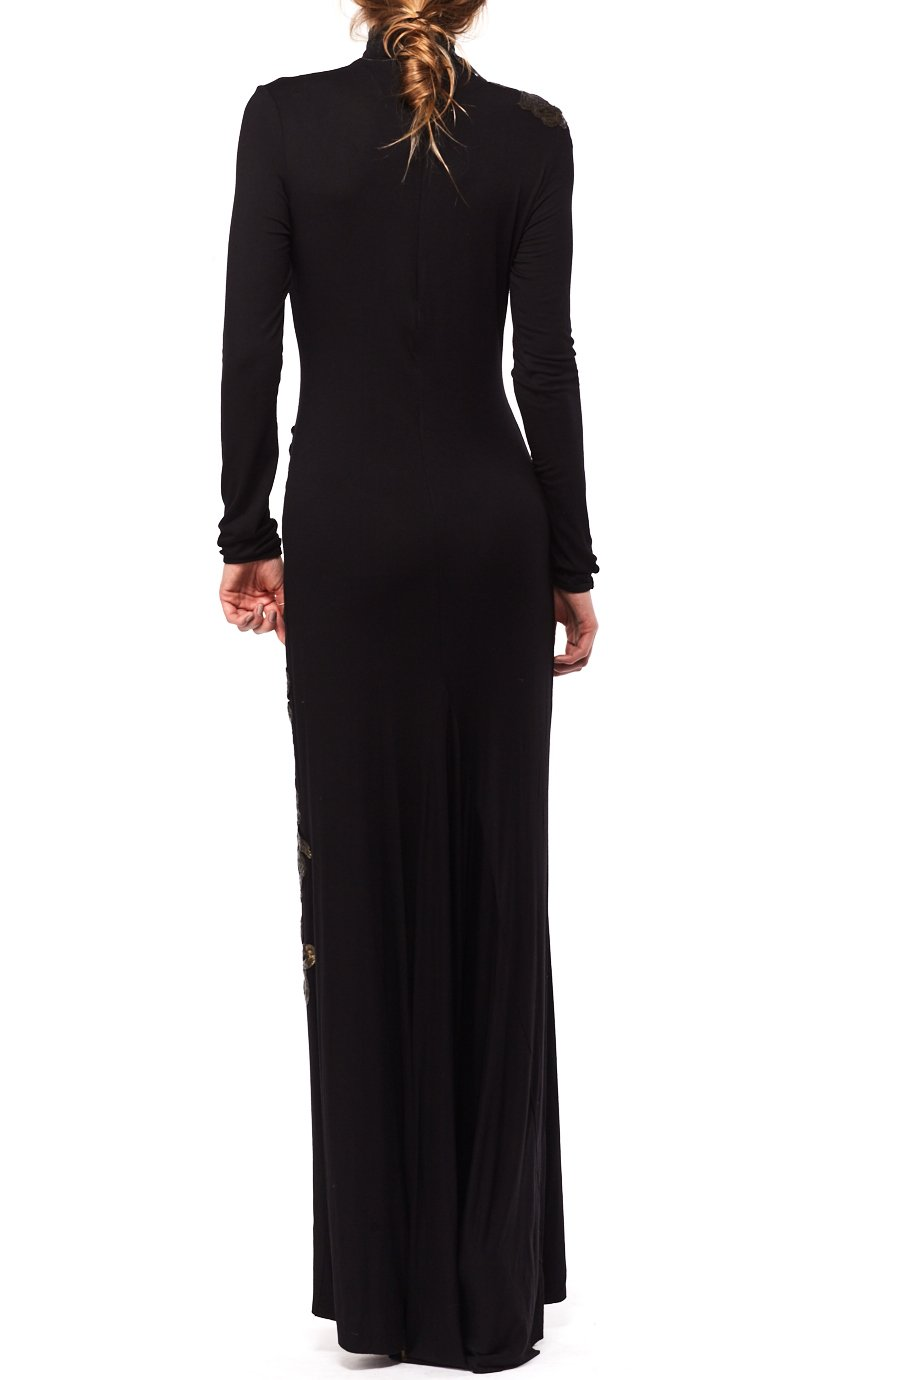 Denis Gagnon Black Sexy Body Con Fishtail Gown